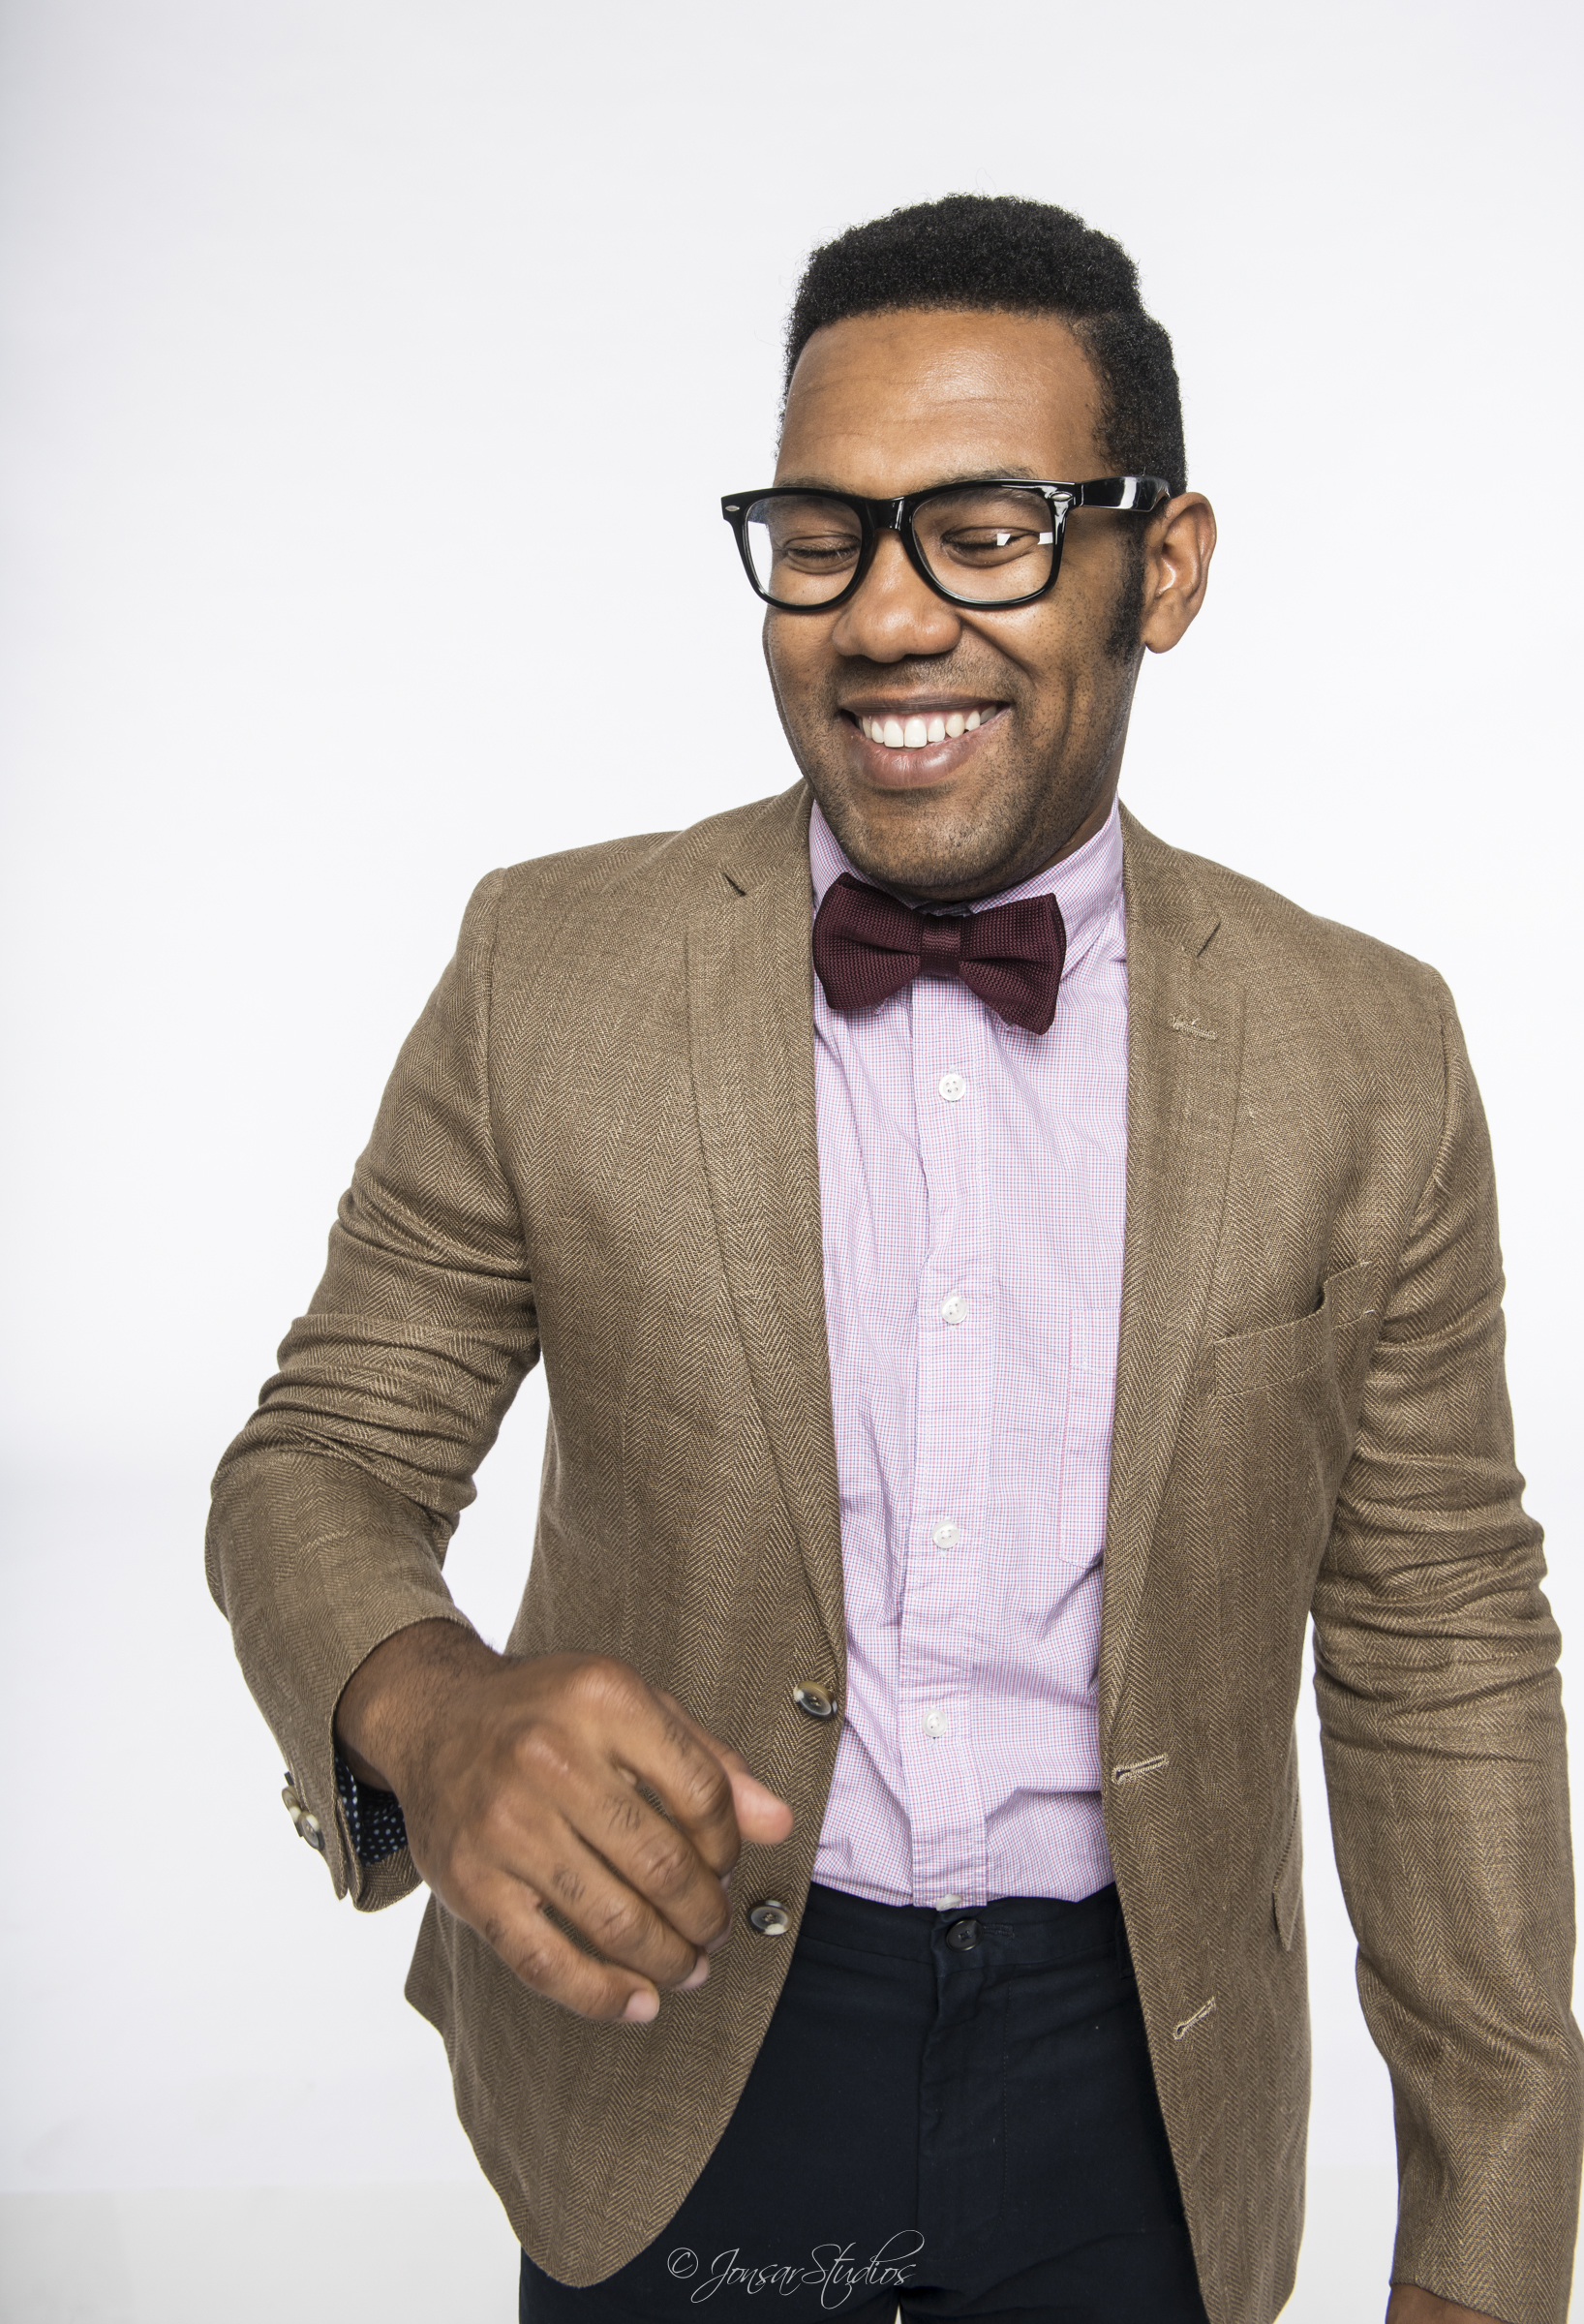 Laughing actor in bow tie